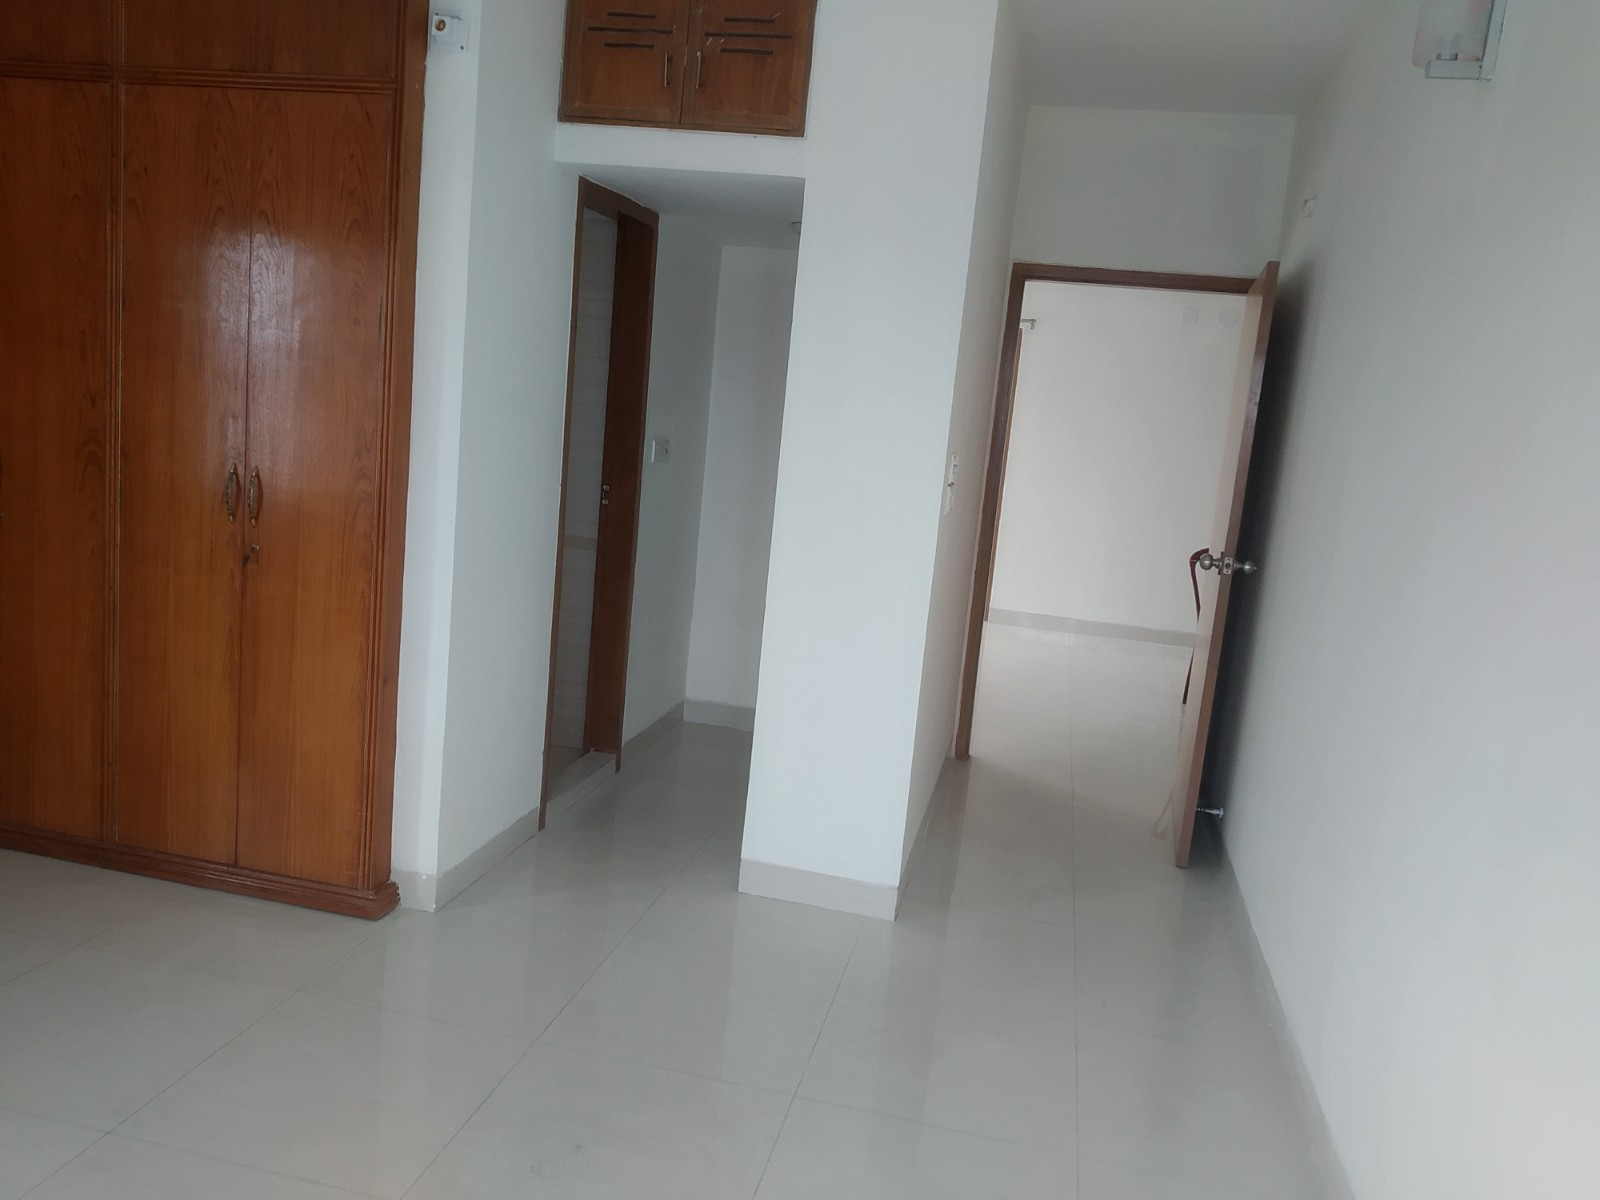 2810-sft-apartment-for-sale-at-dhanmondi-14th-floor-101290